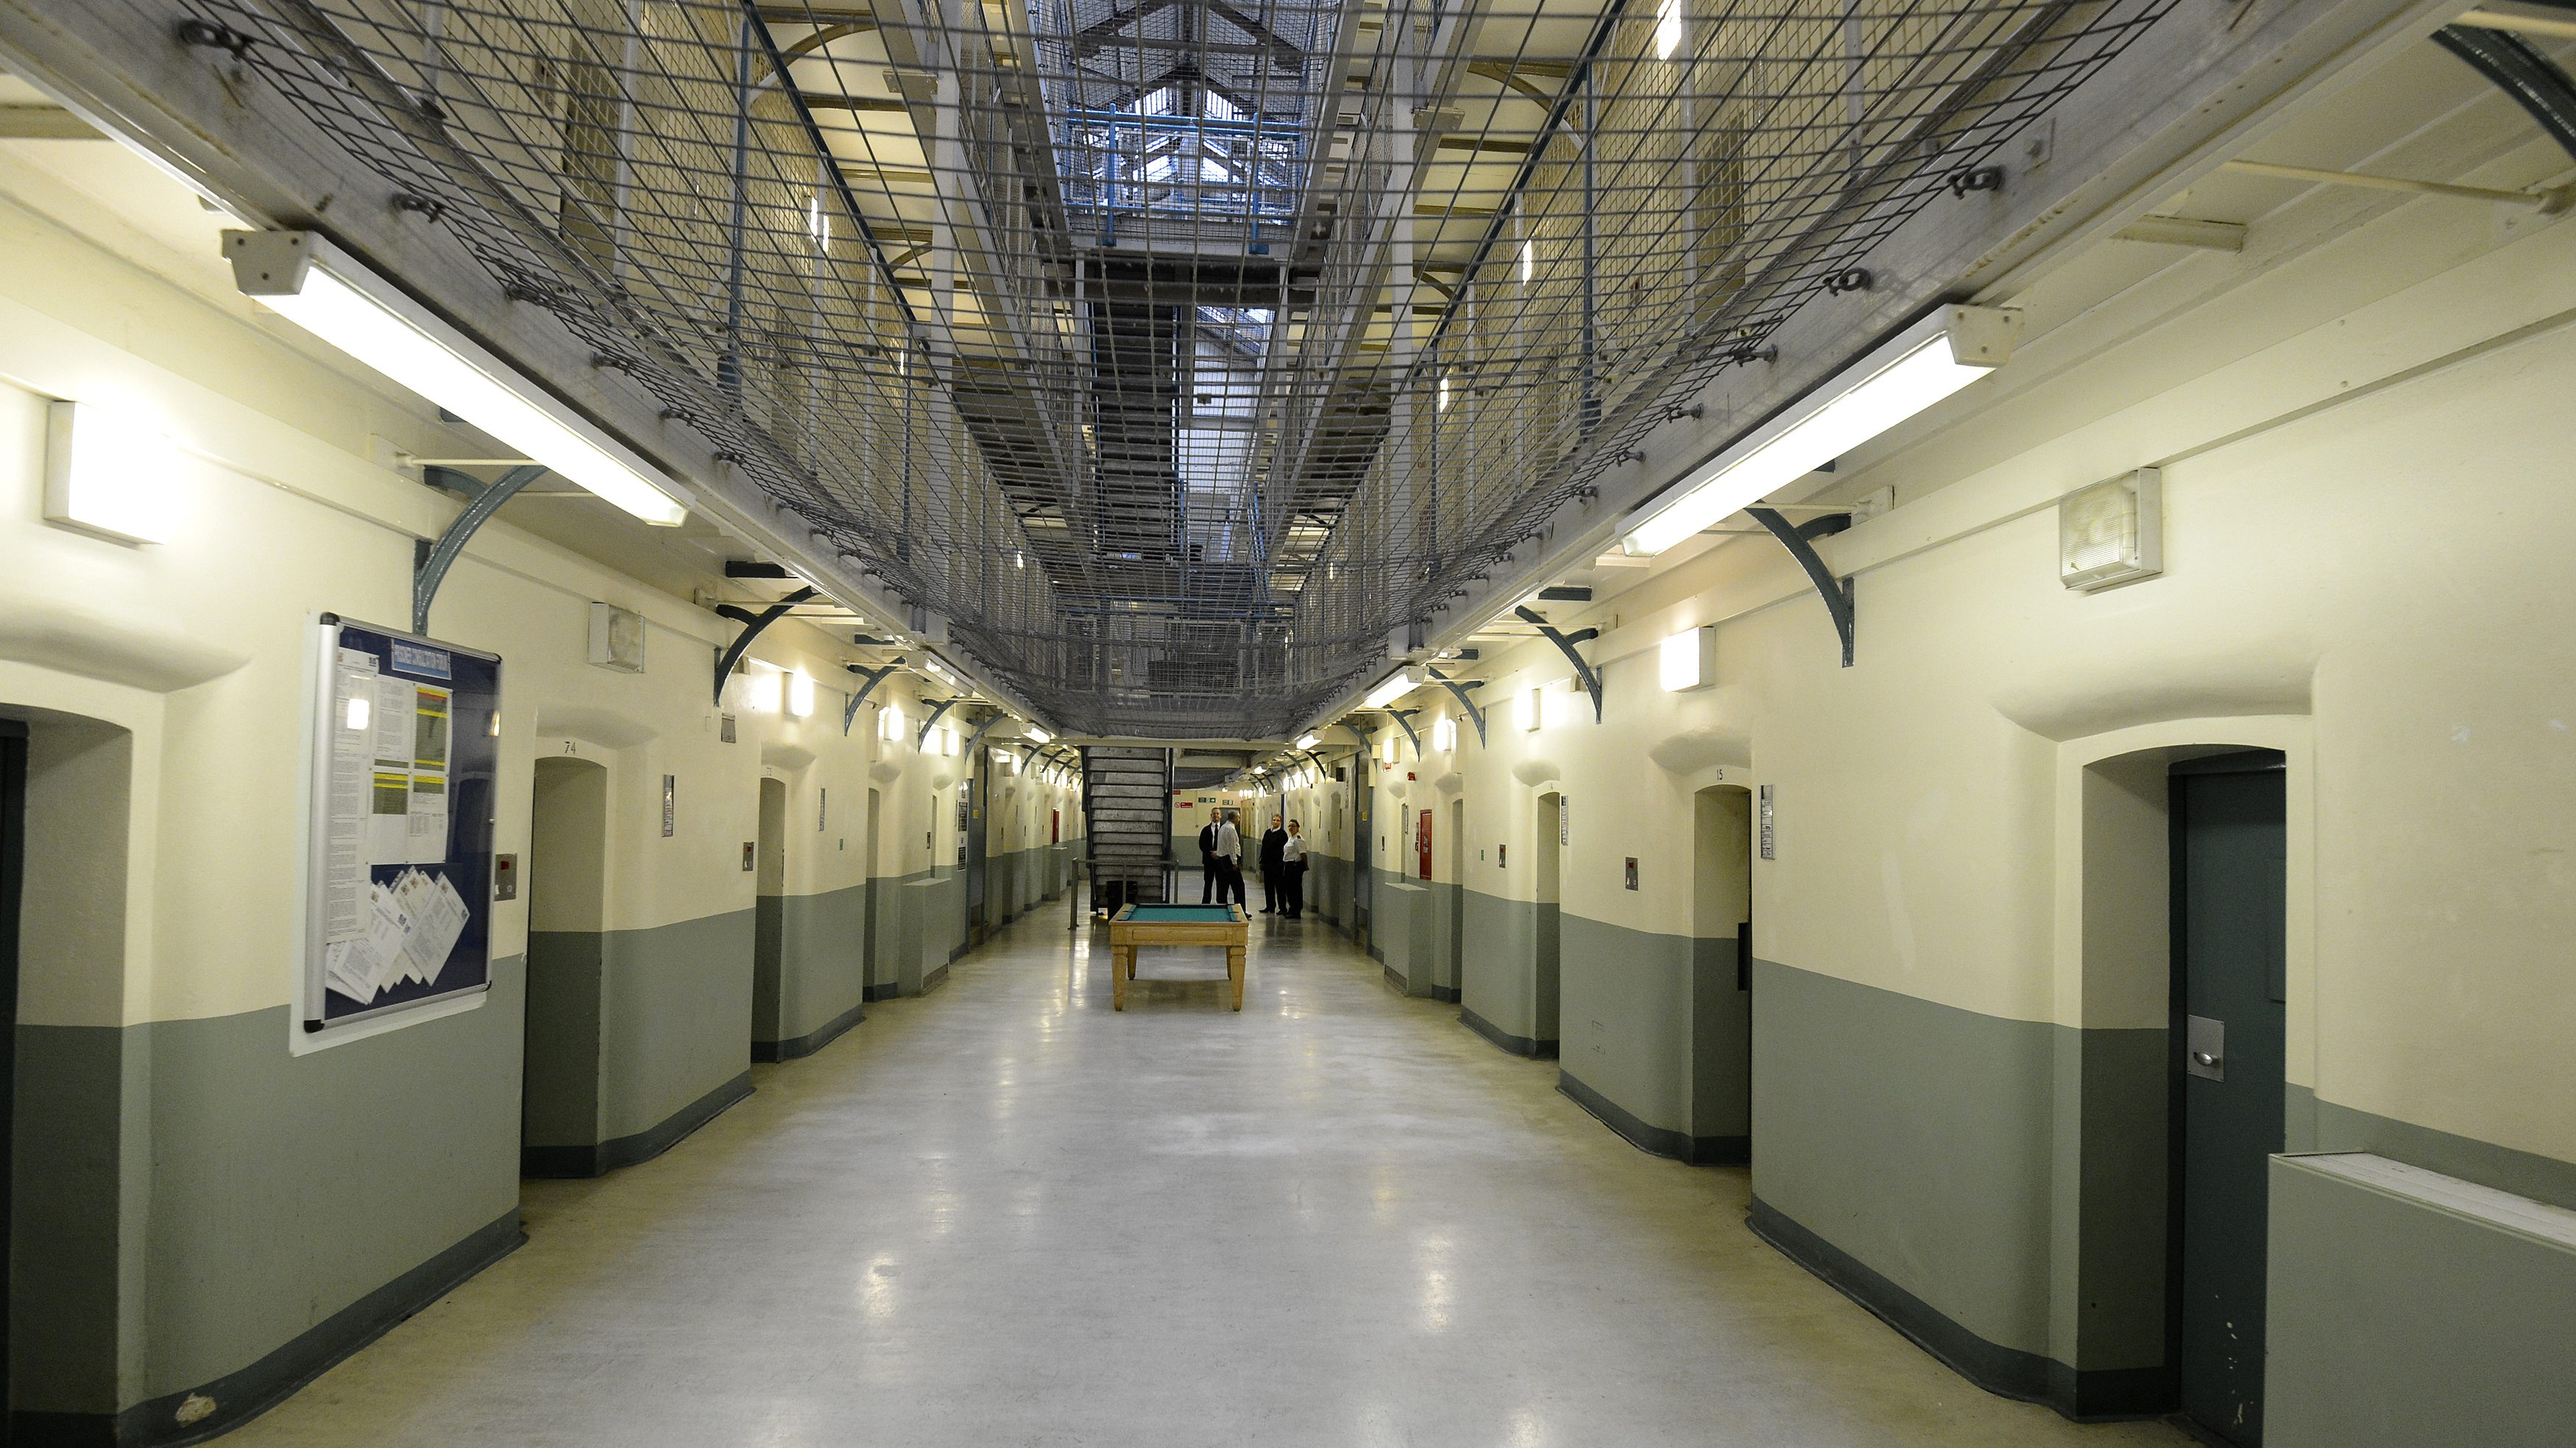 A general view shows C wing at Wormwood Scrubs prison in London